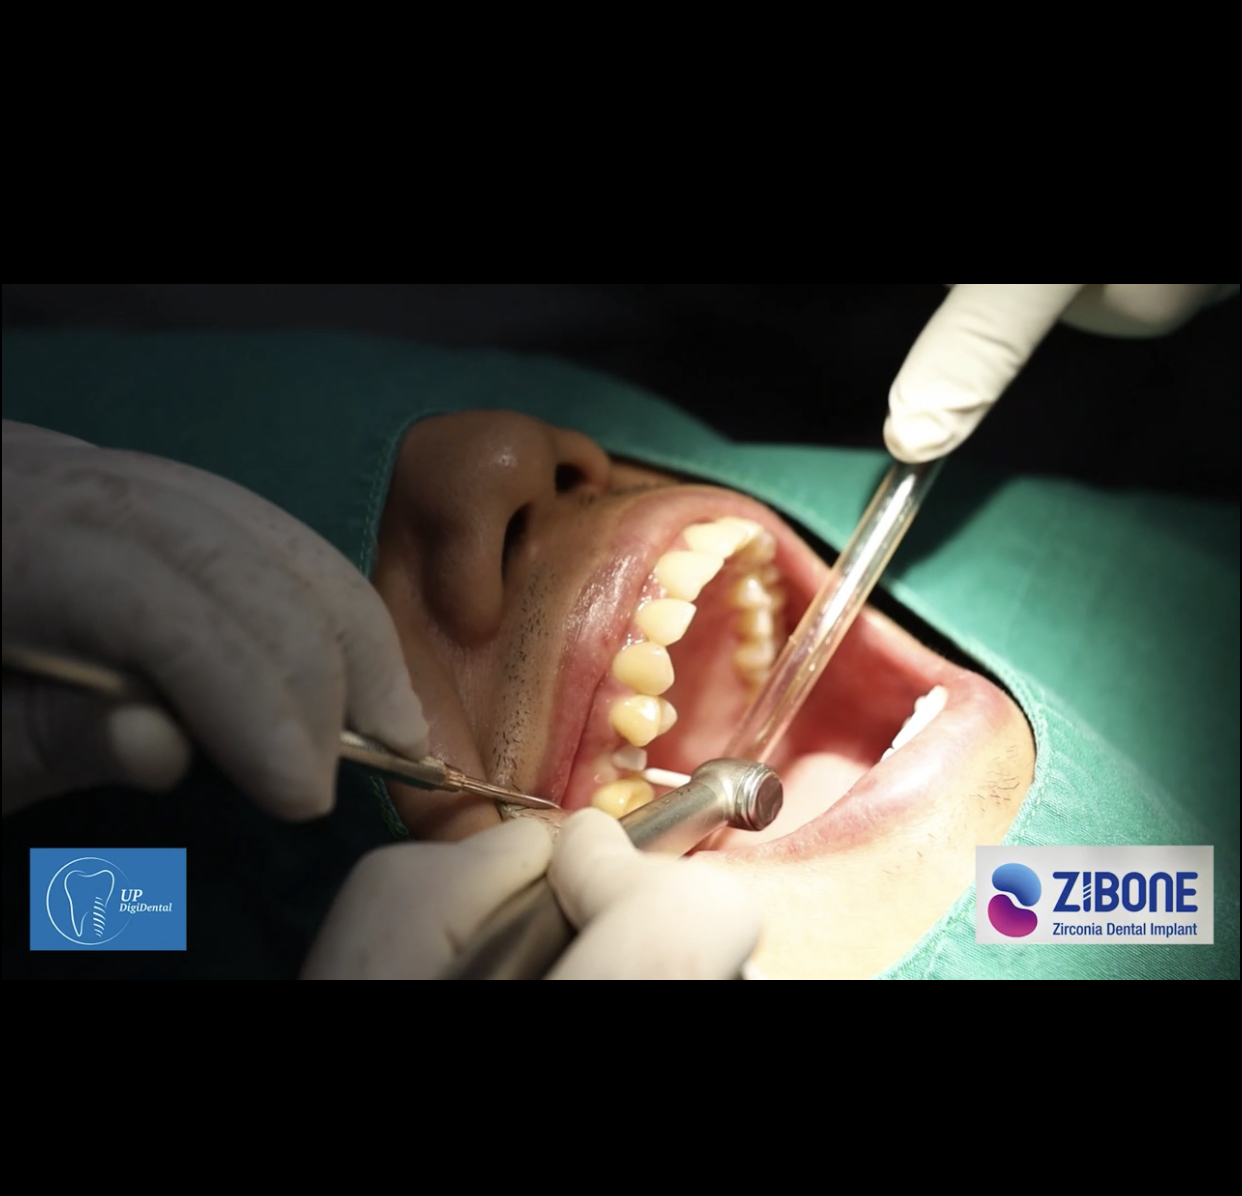 Zibone-Zirconia Dental Implant System -Thailand